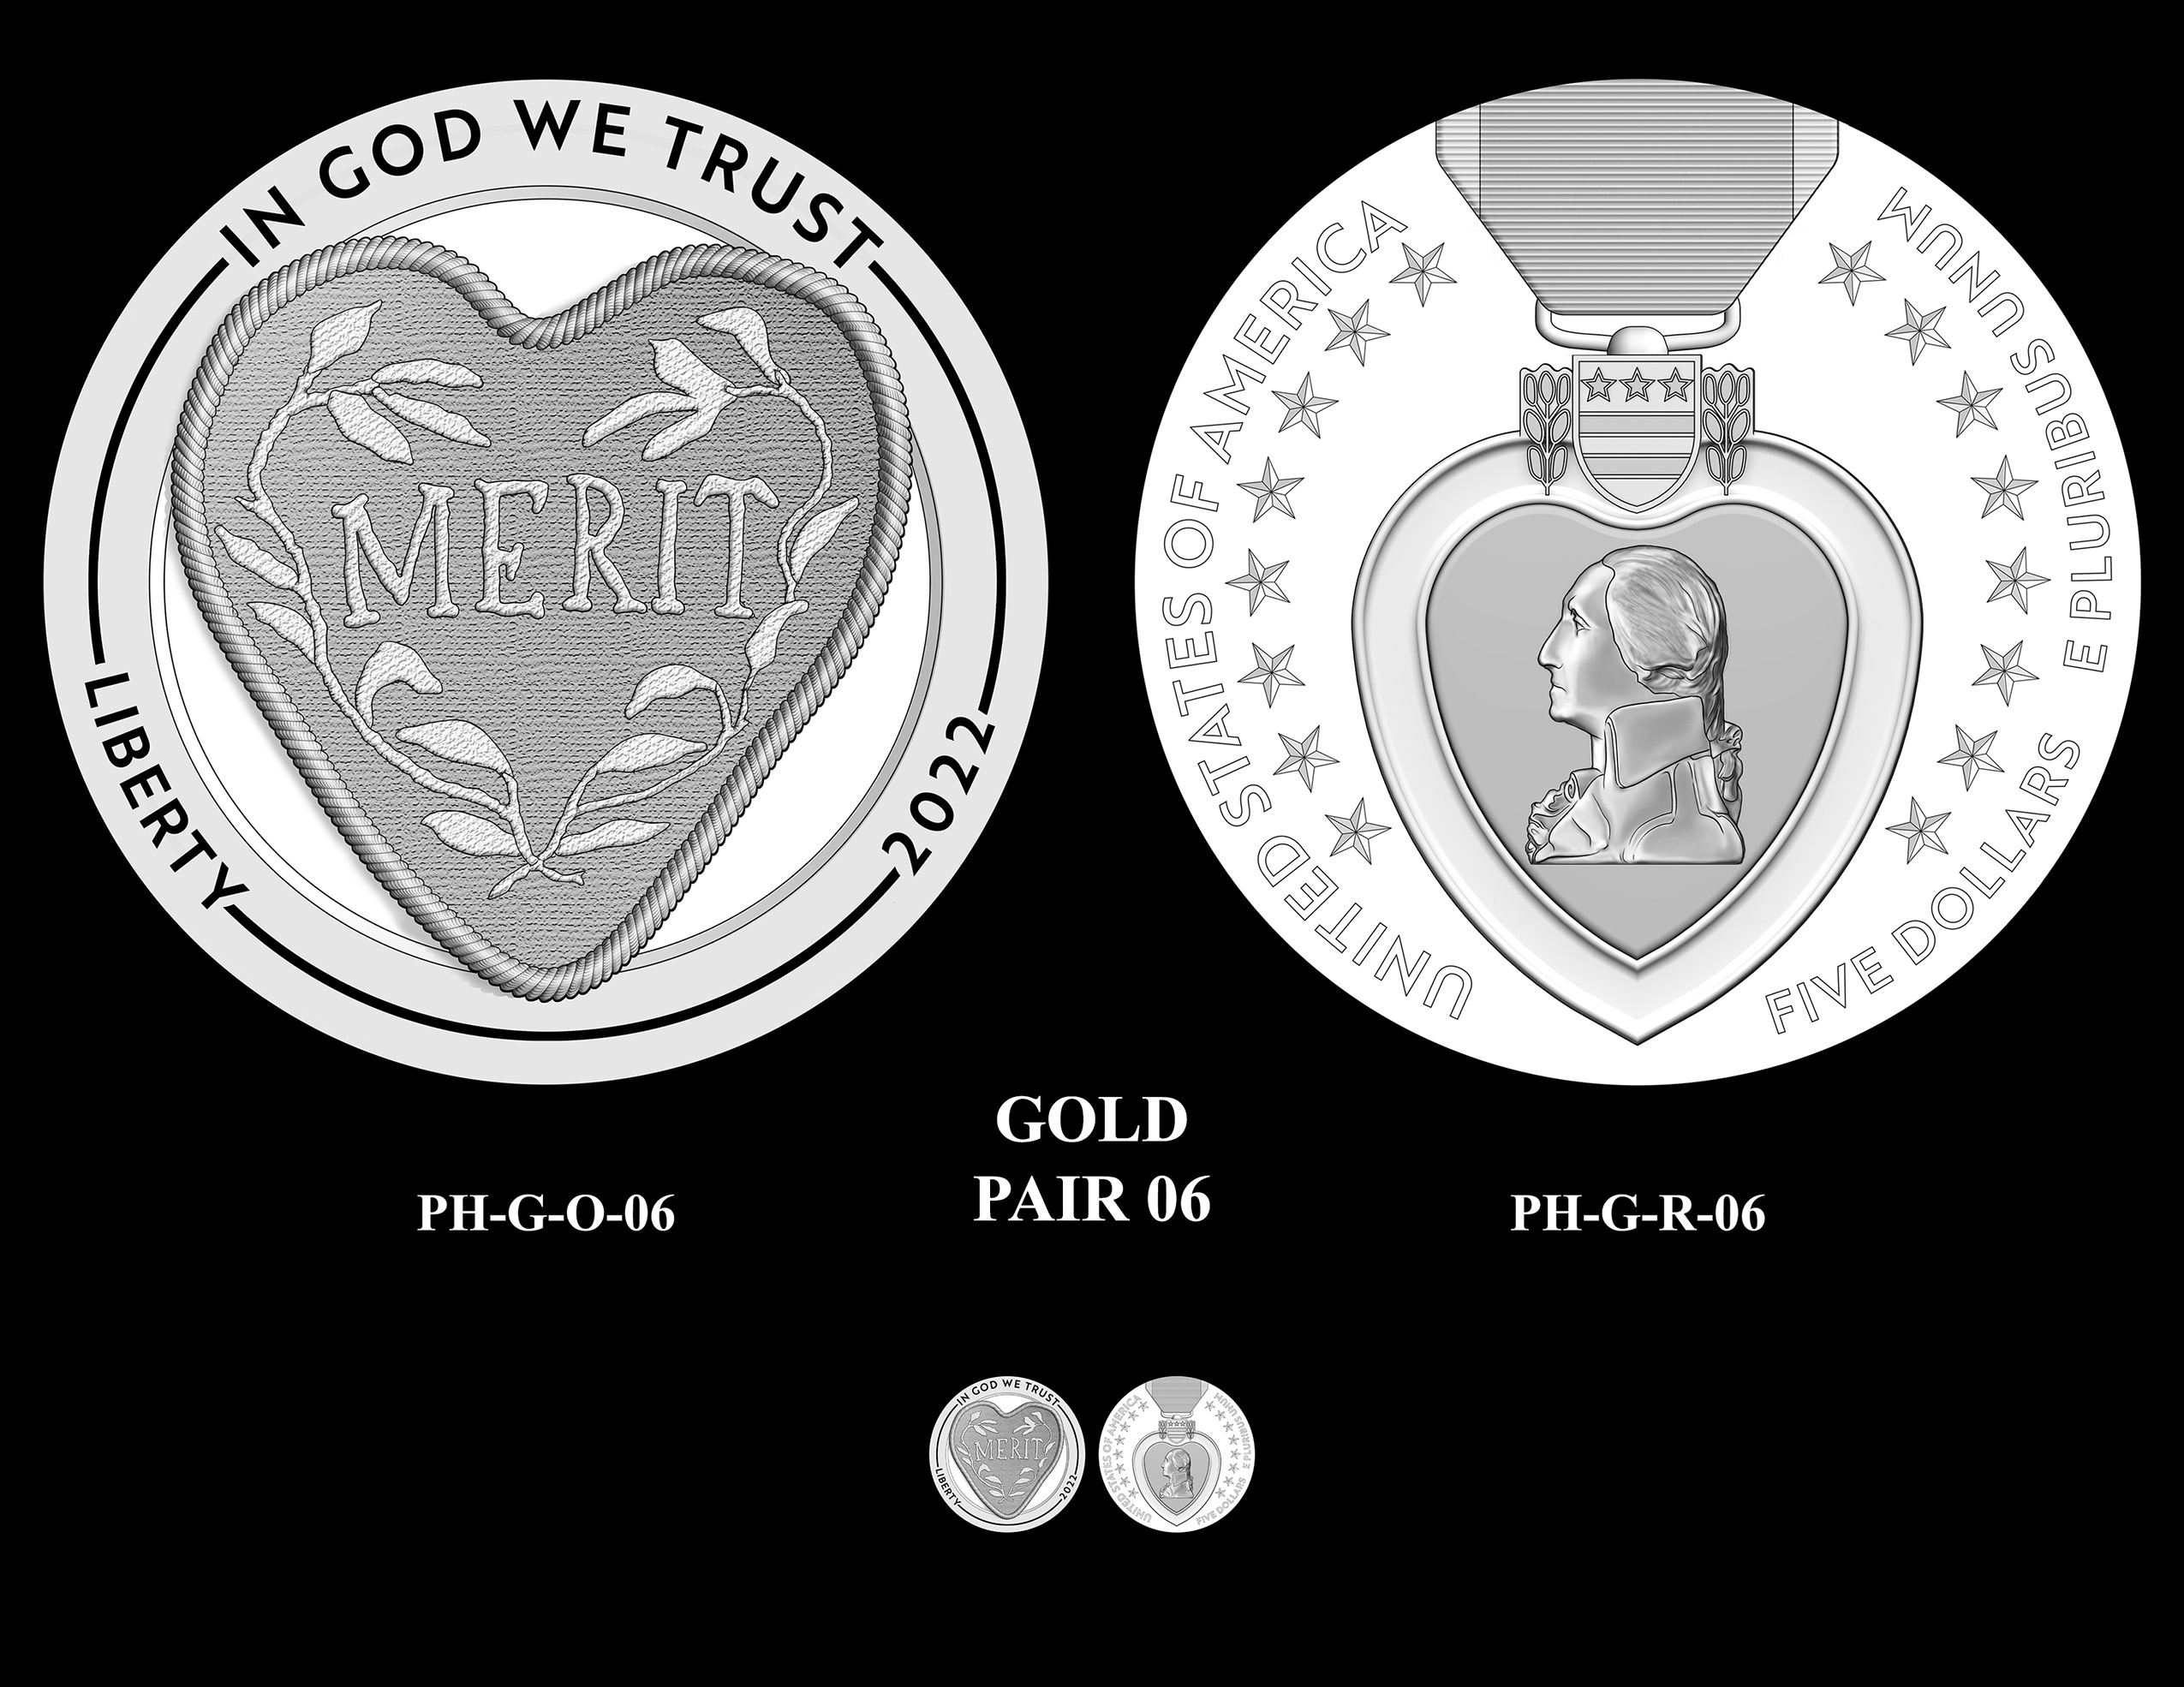 Gold Pair 06 -- National Purple Heart Hall of Honor Commemorative Coin Program